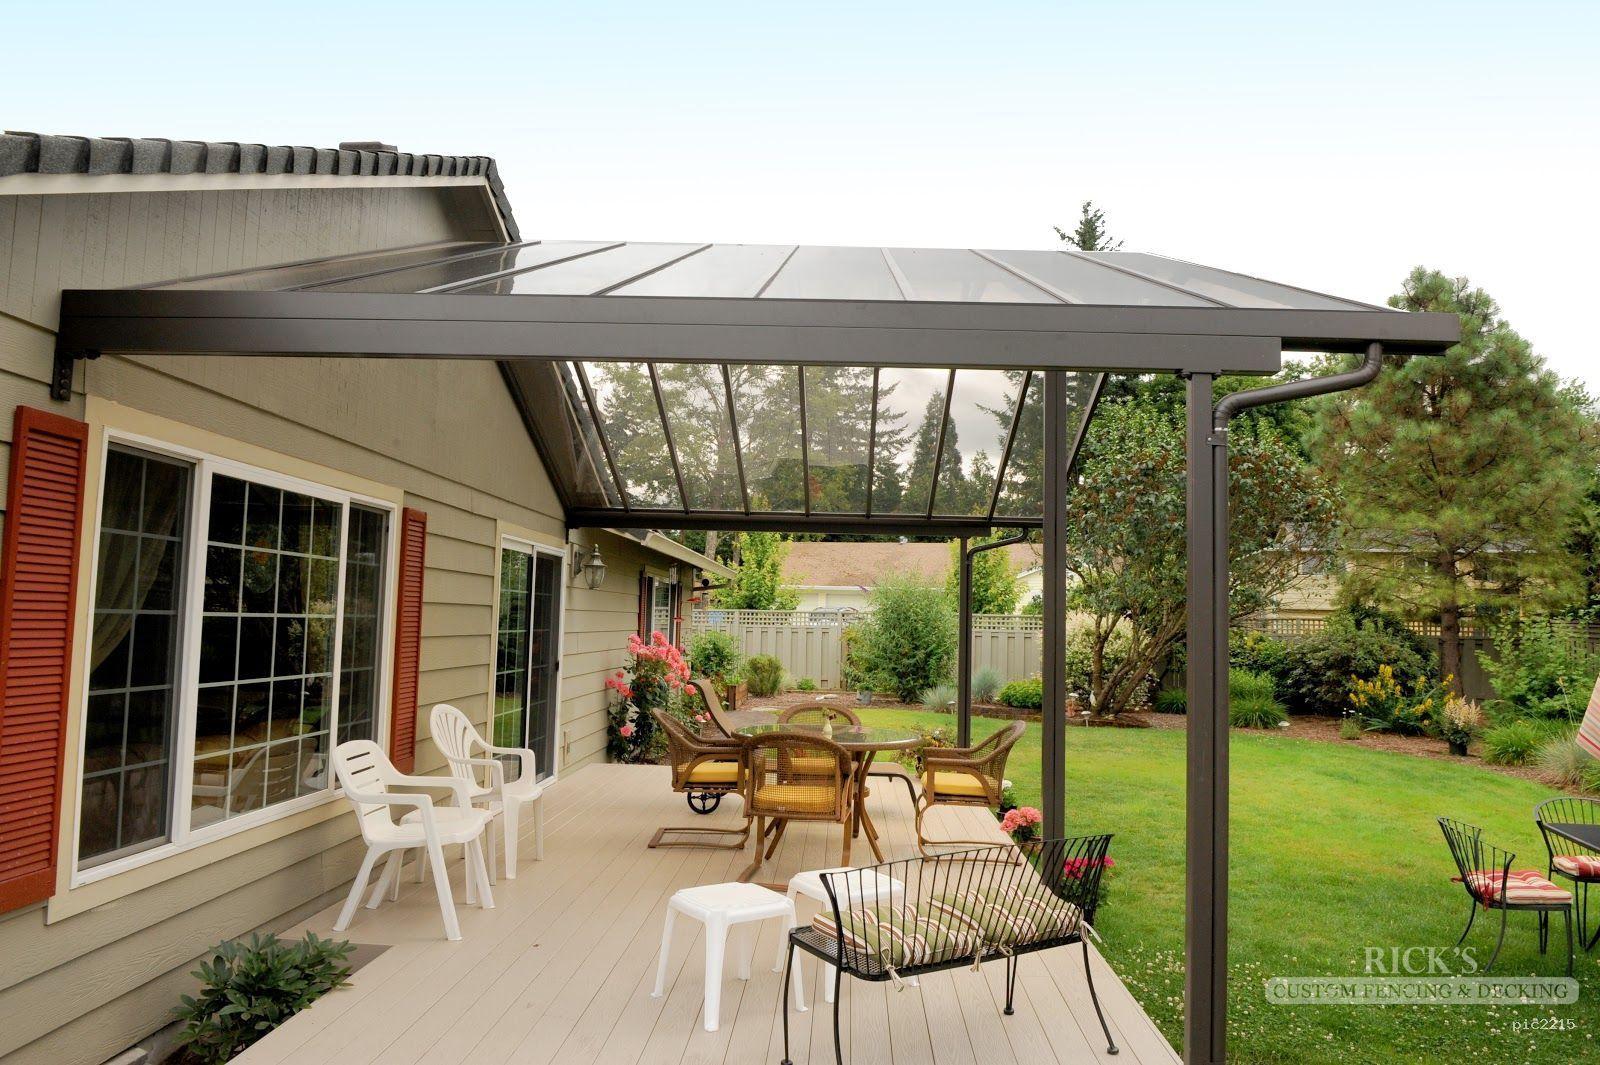 Aluminum Patio Covers \u0026 Aluminum Patio Cover Kits | Ricksfencing.com - Need a gutter system like this : patio cover kits - amorenlinea.org